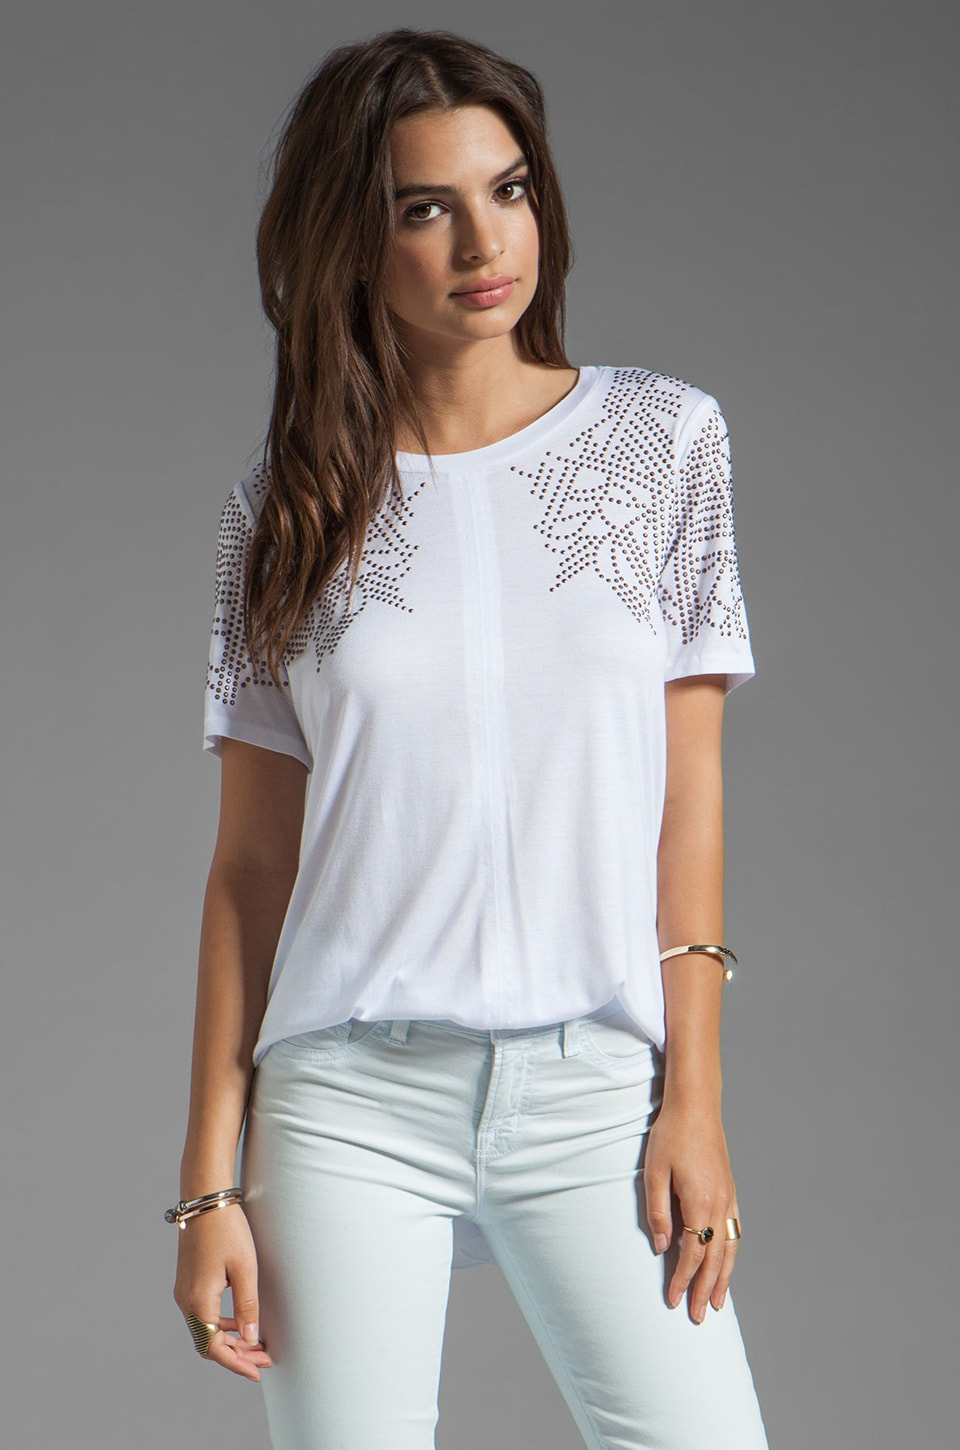 Rebecca Taylor Studded T in White